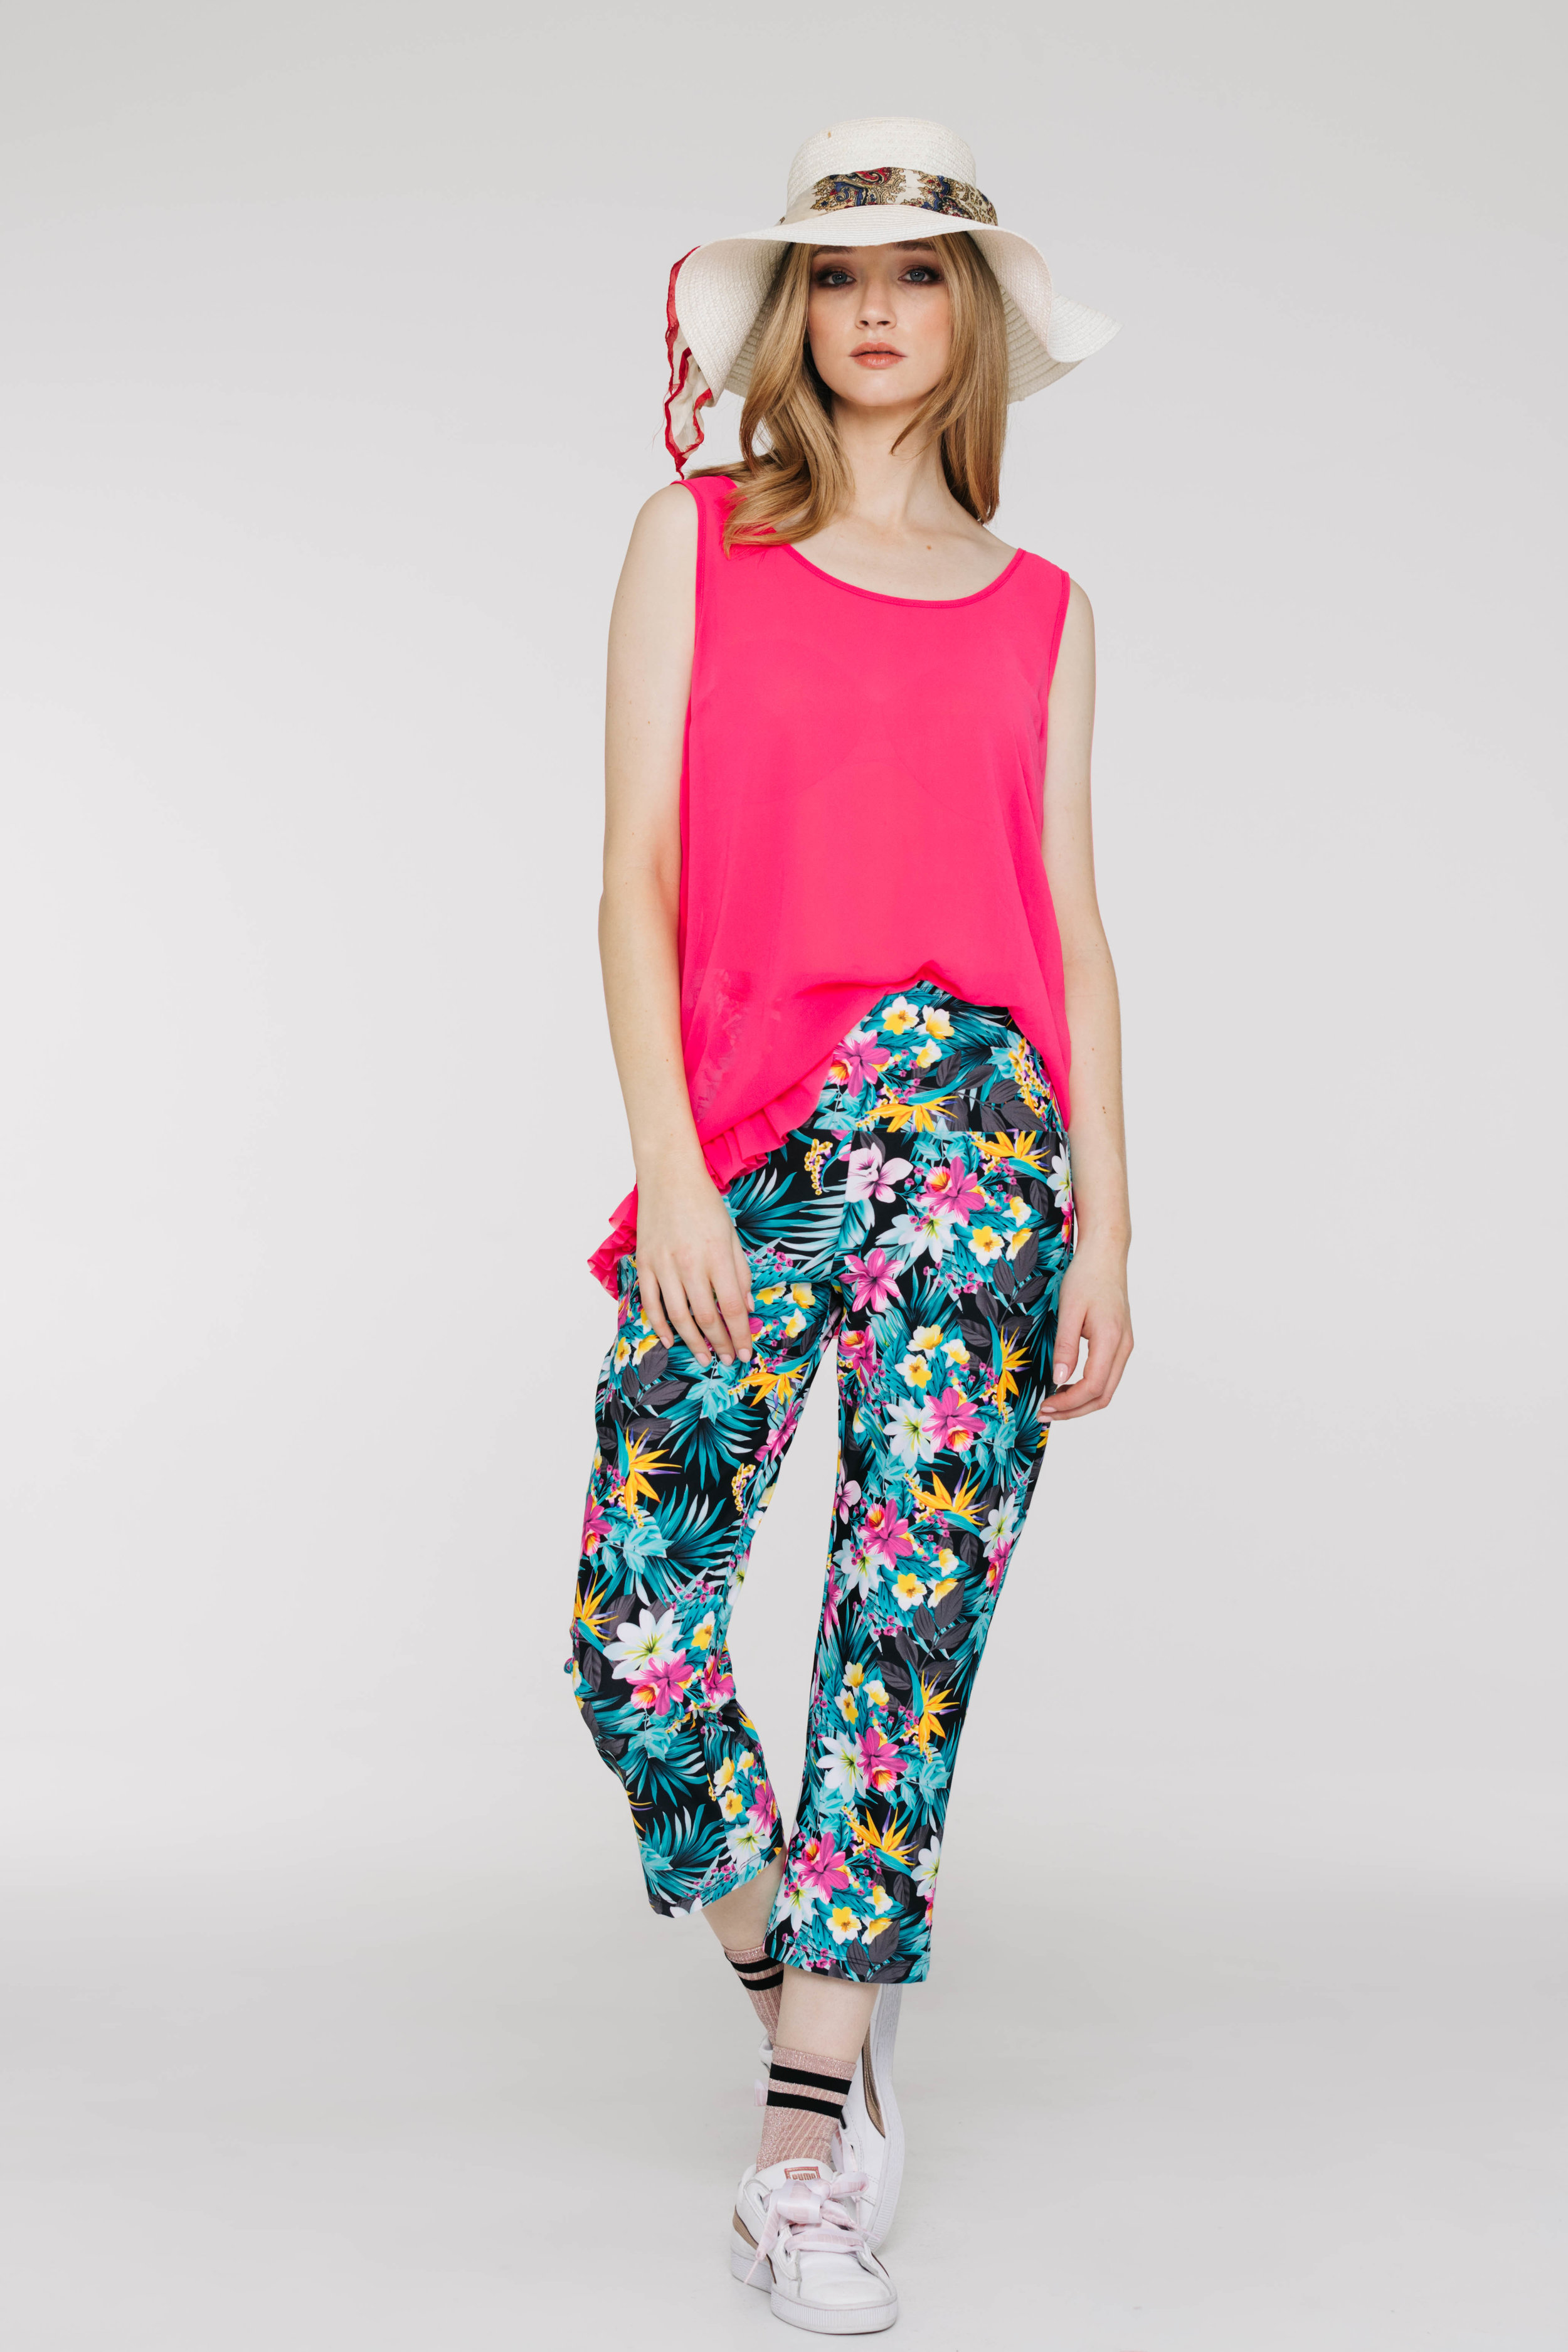 Frilly Singlet 6465P Hot Pink, Pilazzo Pant 3432P Tropicano